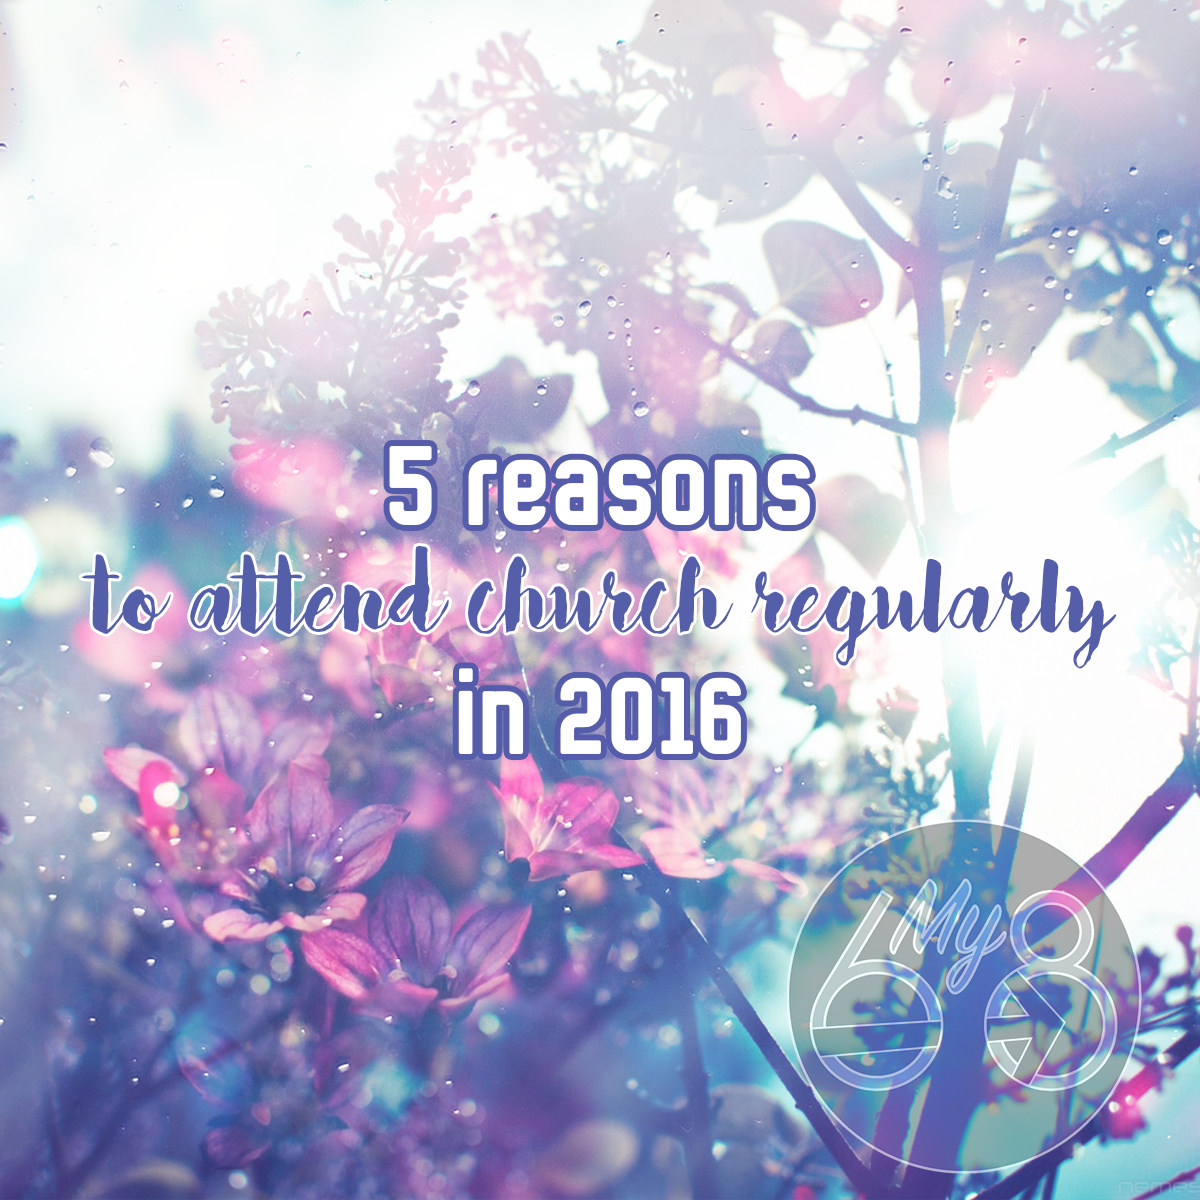 5 Reasons To Attend Church Regularly in 2016